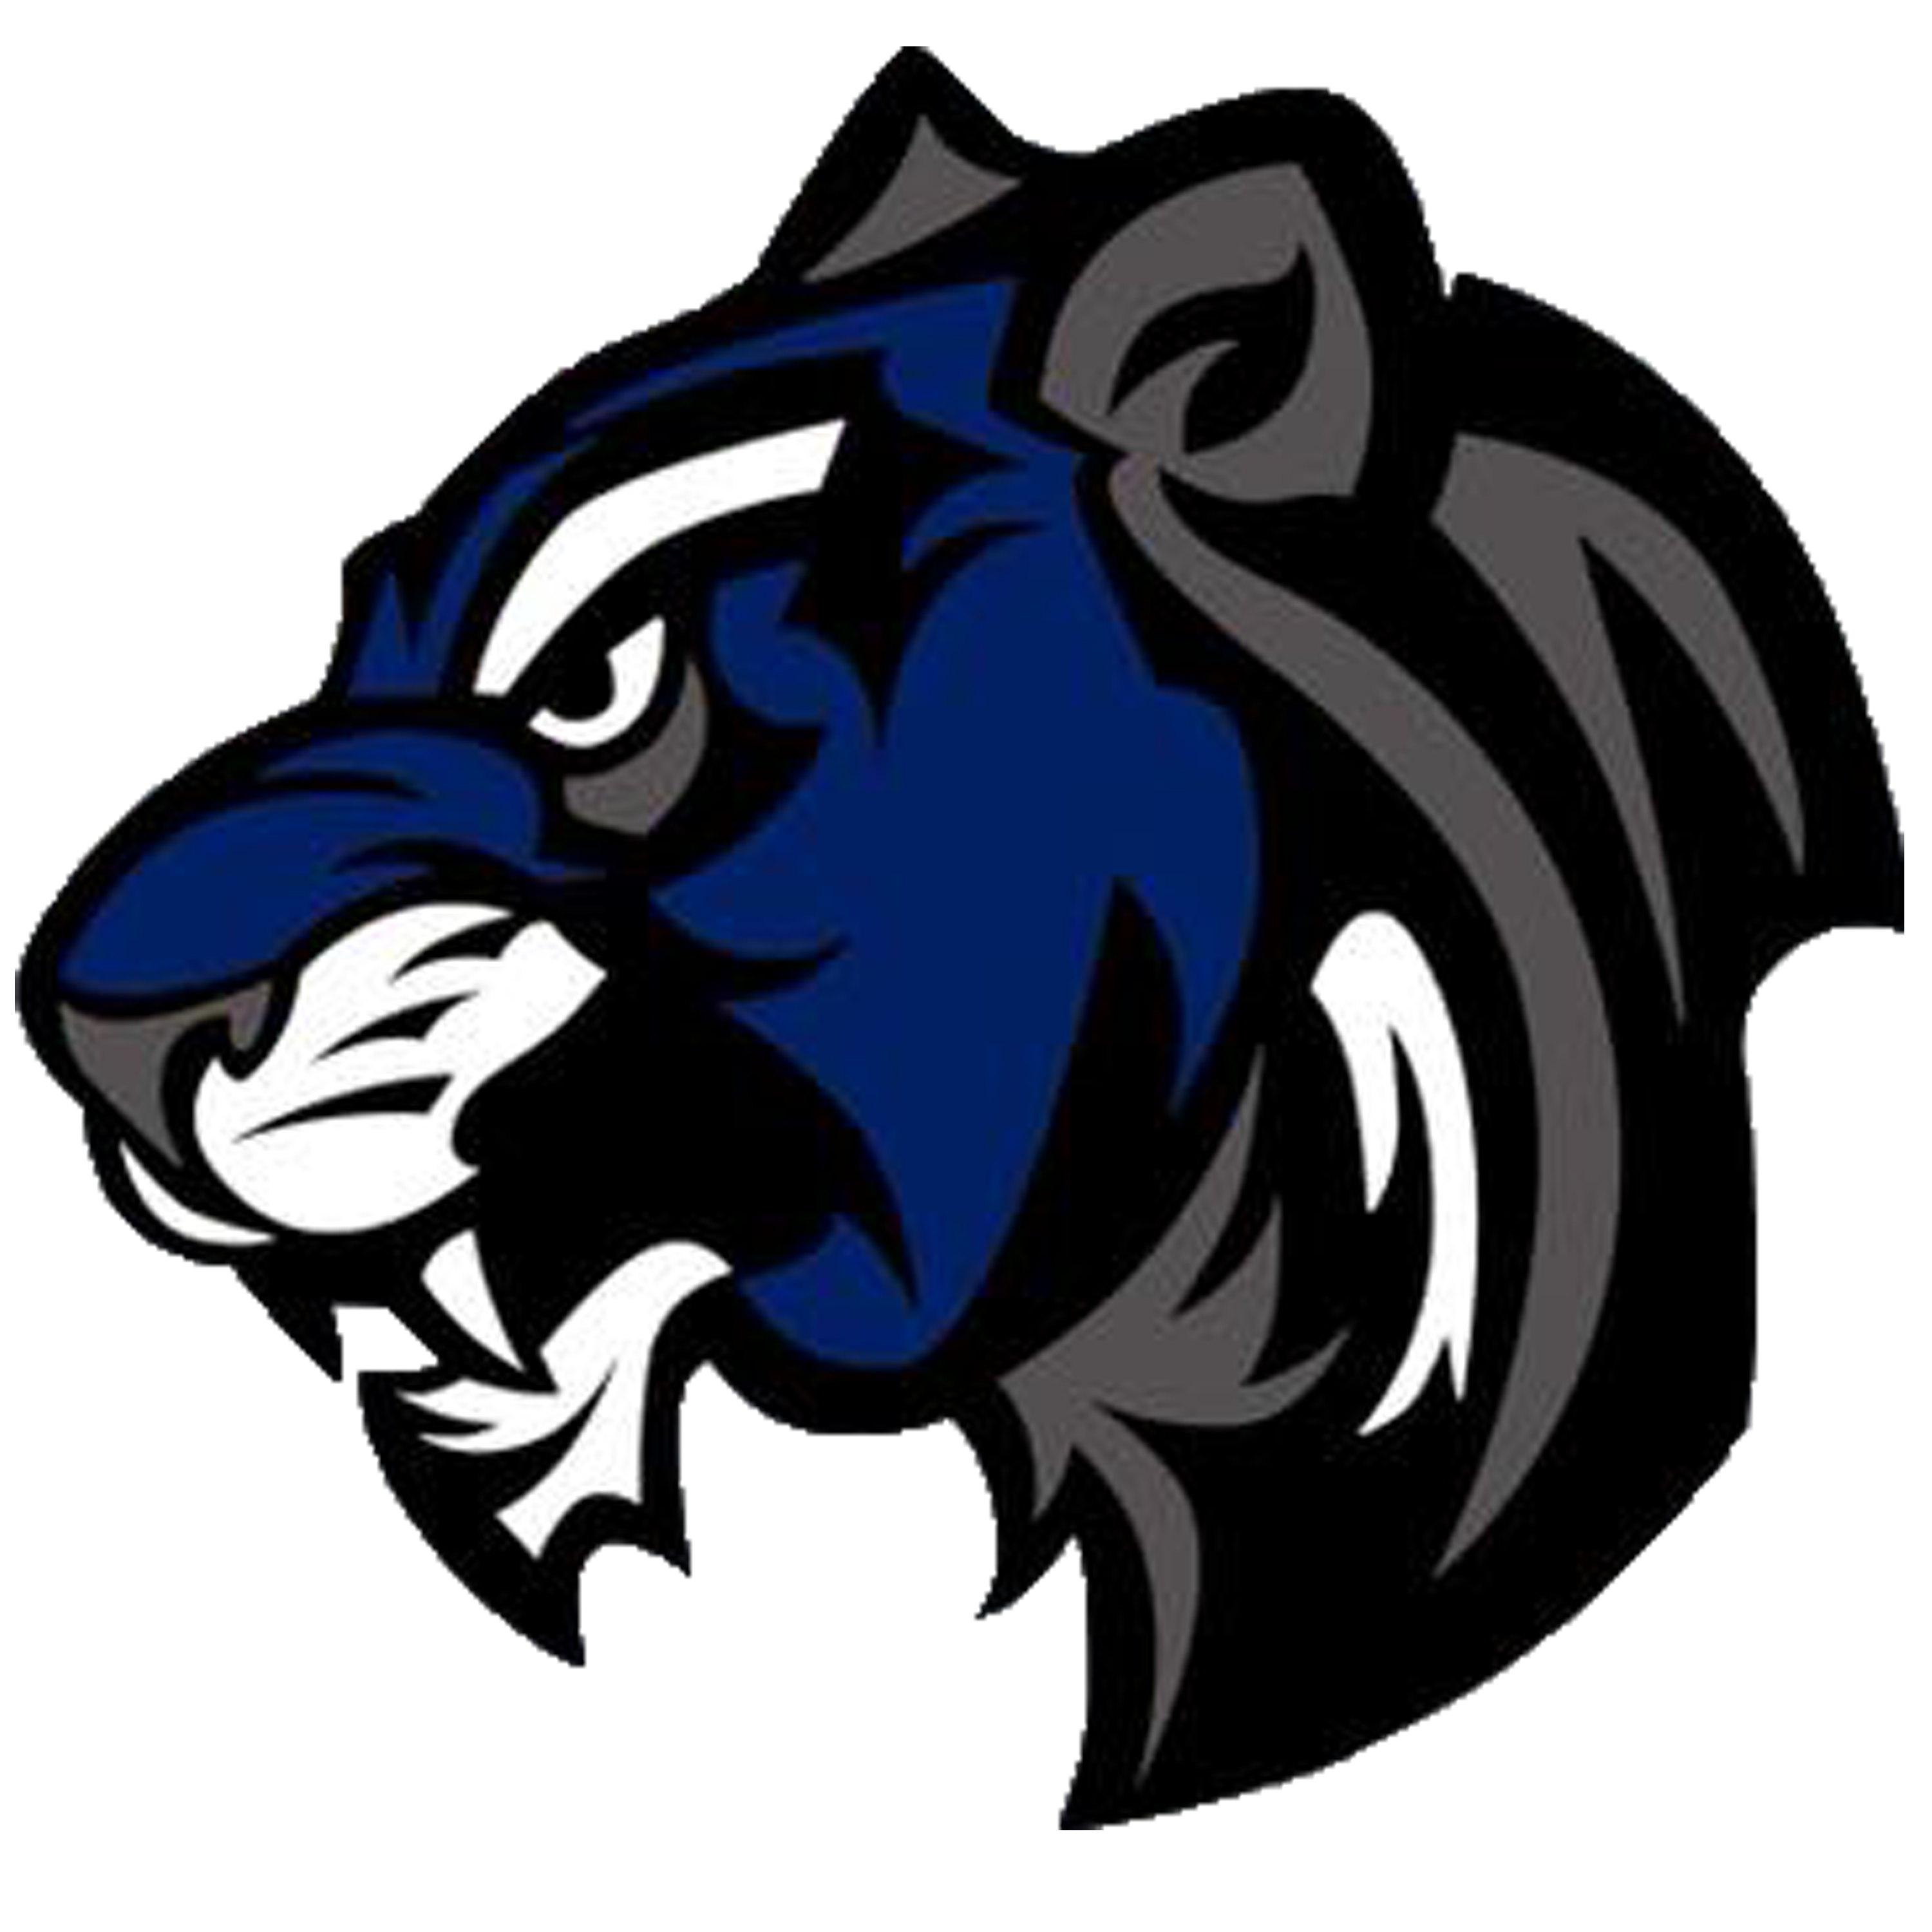 Panther clipart medina valley. Gefa weekly predictions mt